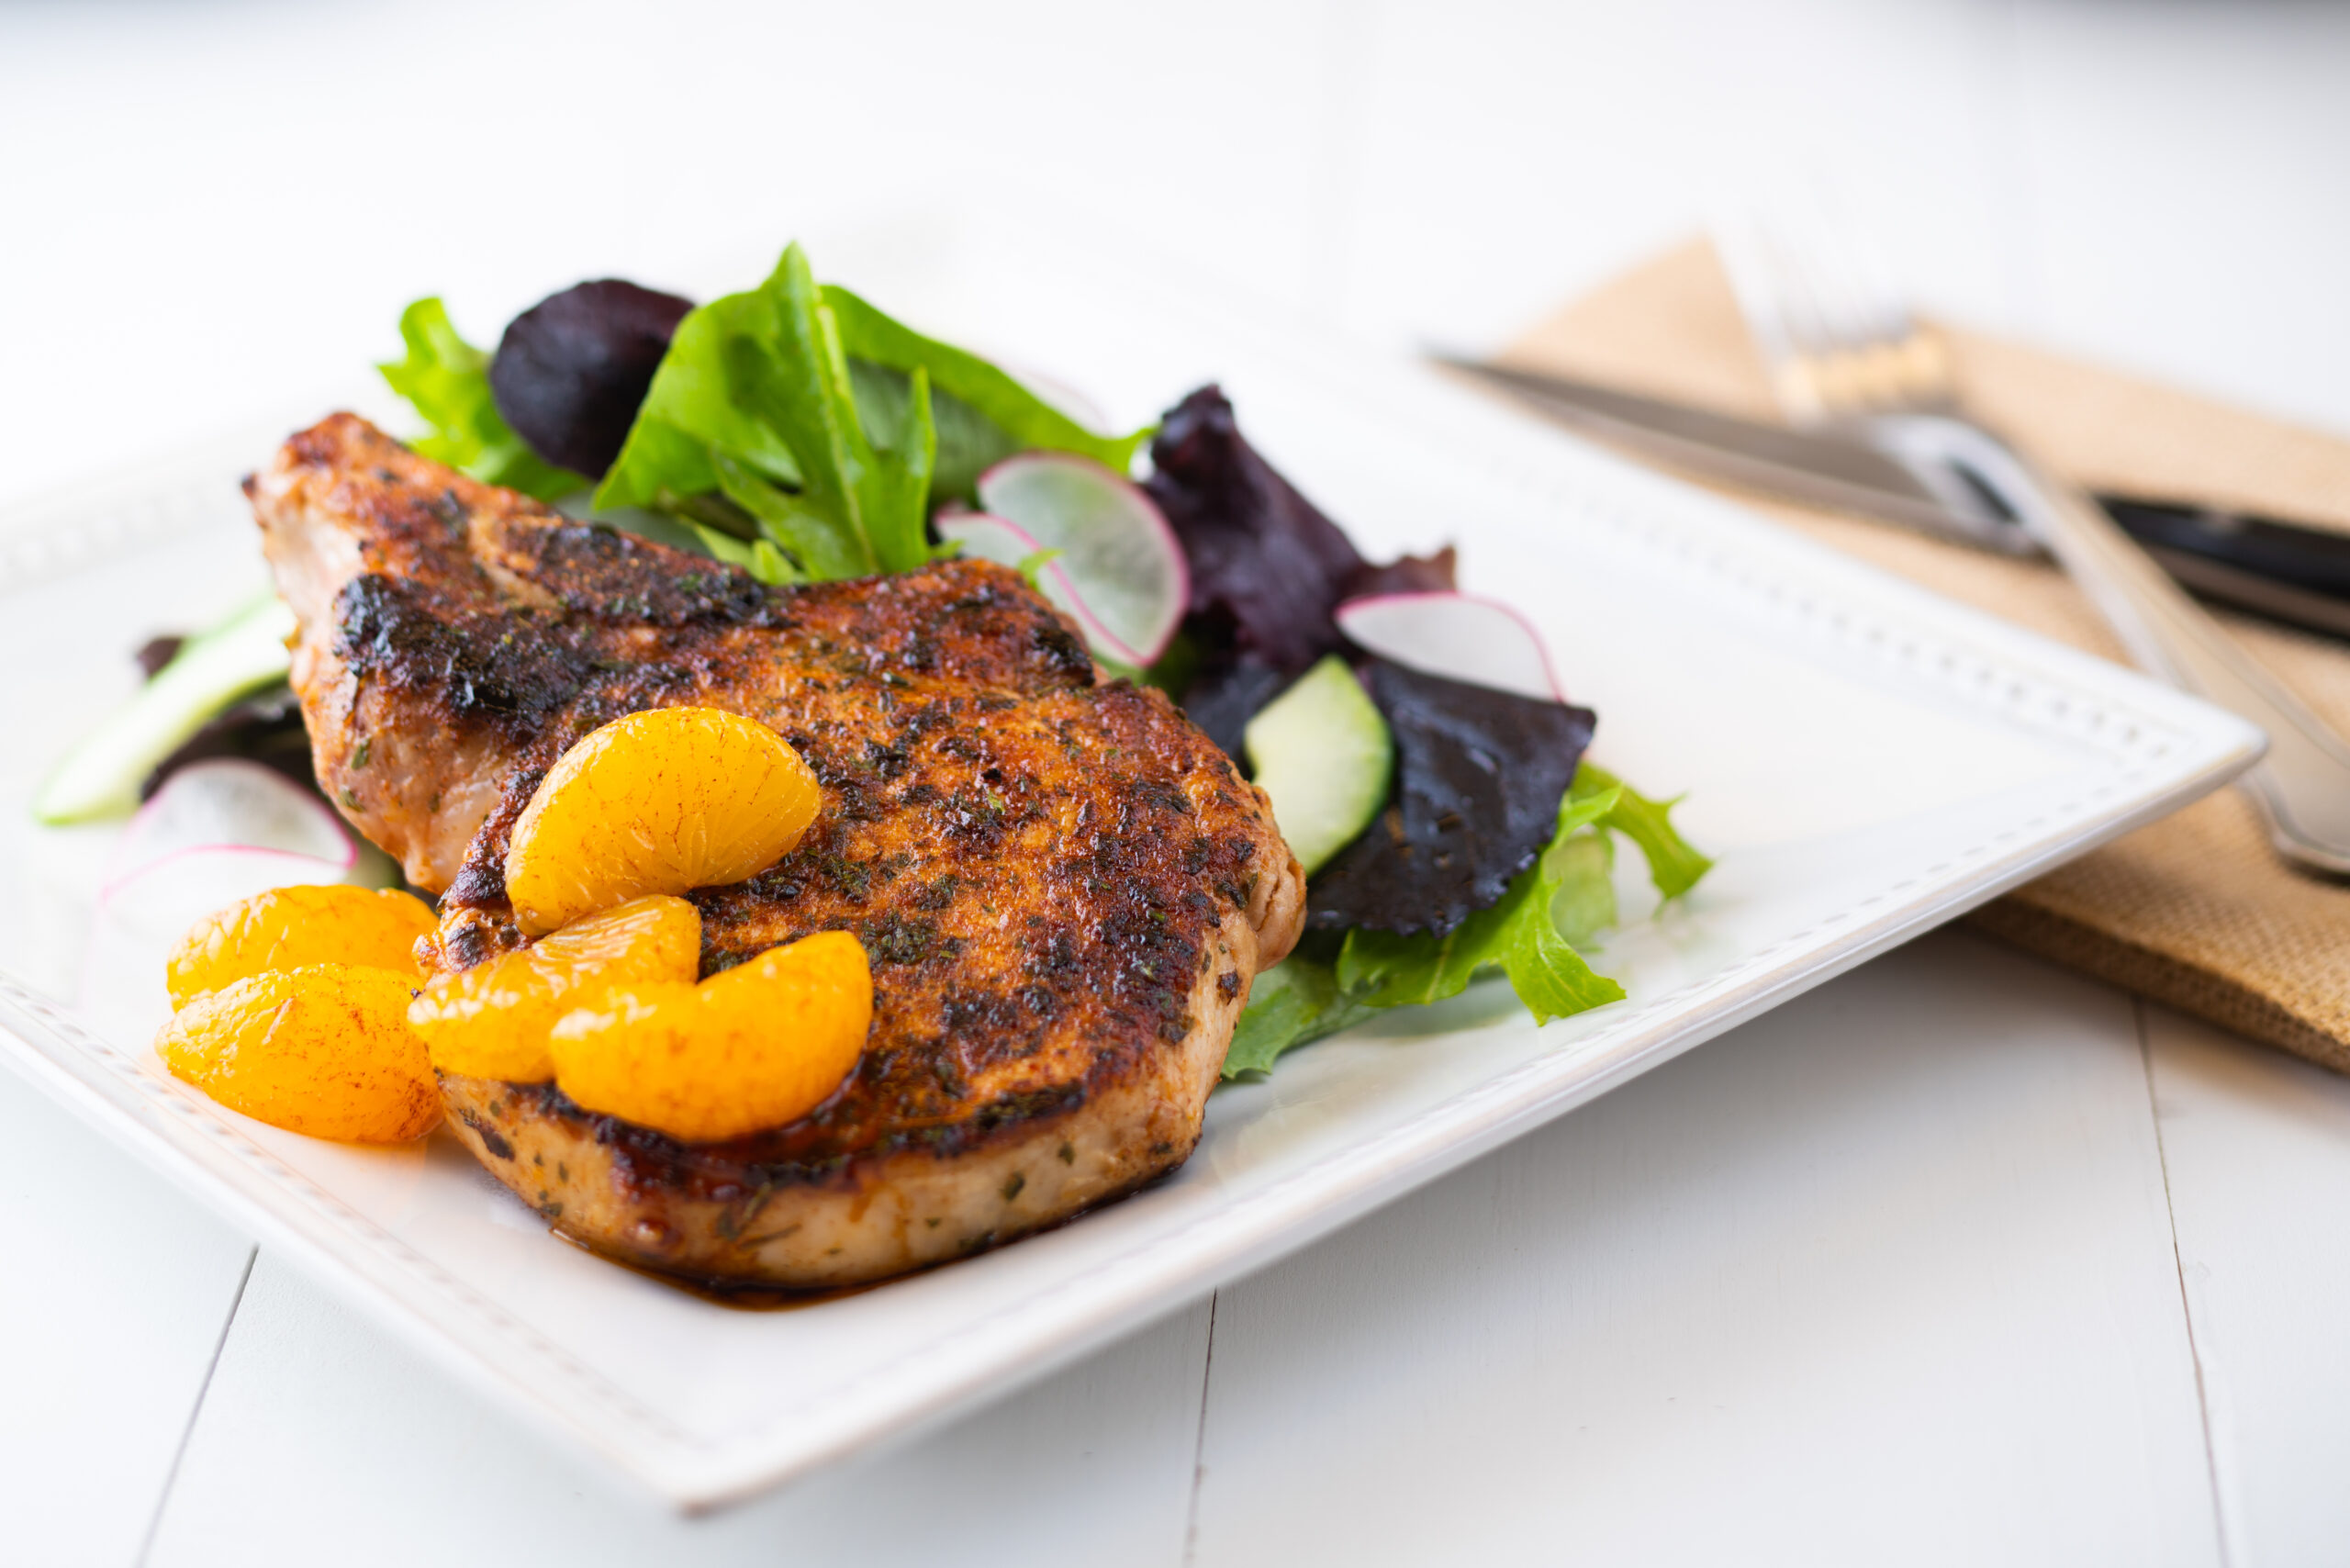 Six Spice Pork Chops with Cinnamon Oranges – Salt-Free Sugar-Free Magic Seasoning Blends™